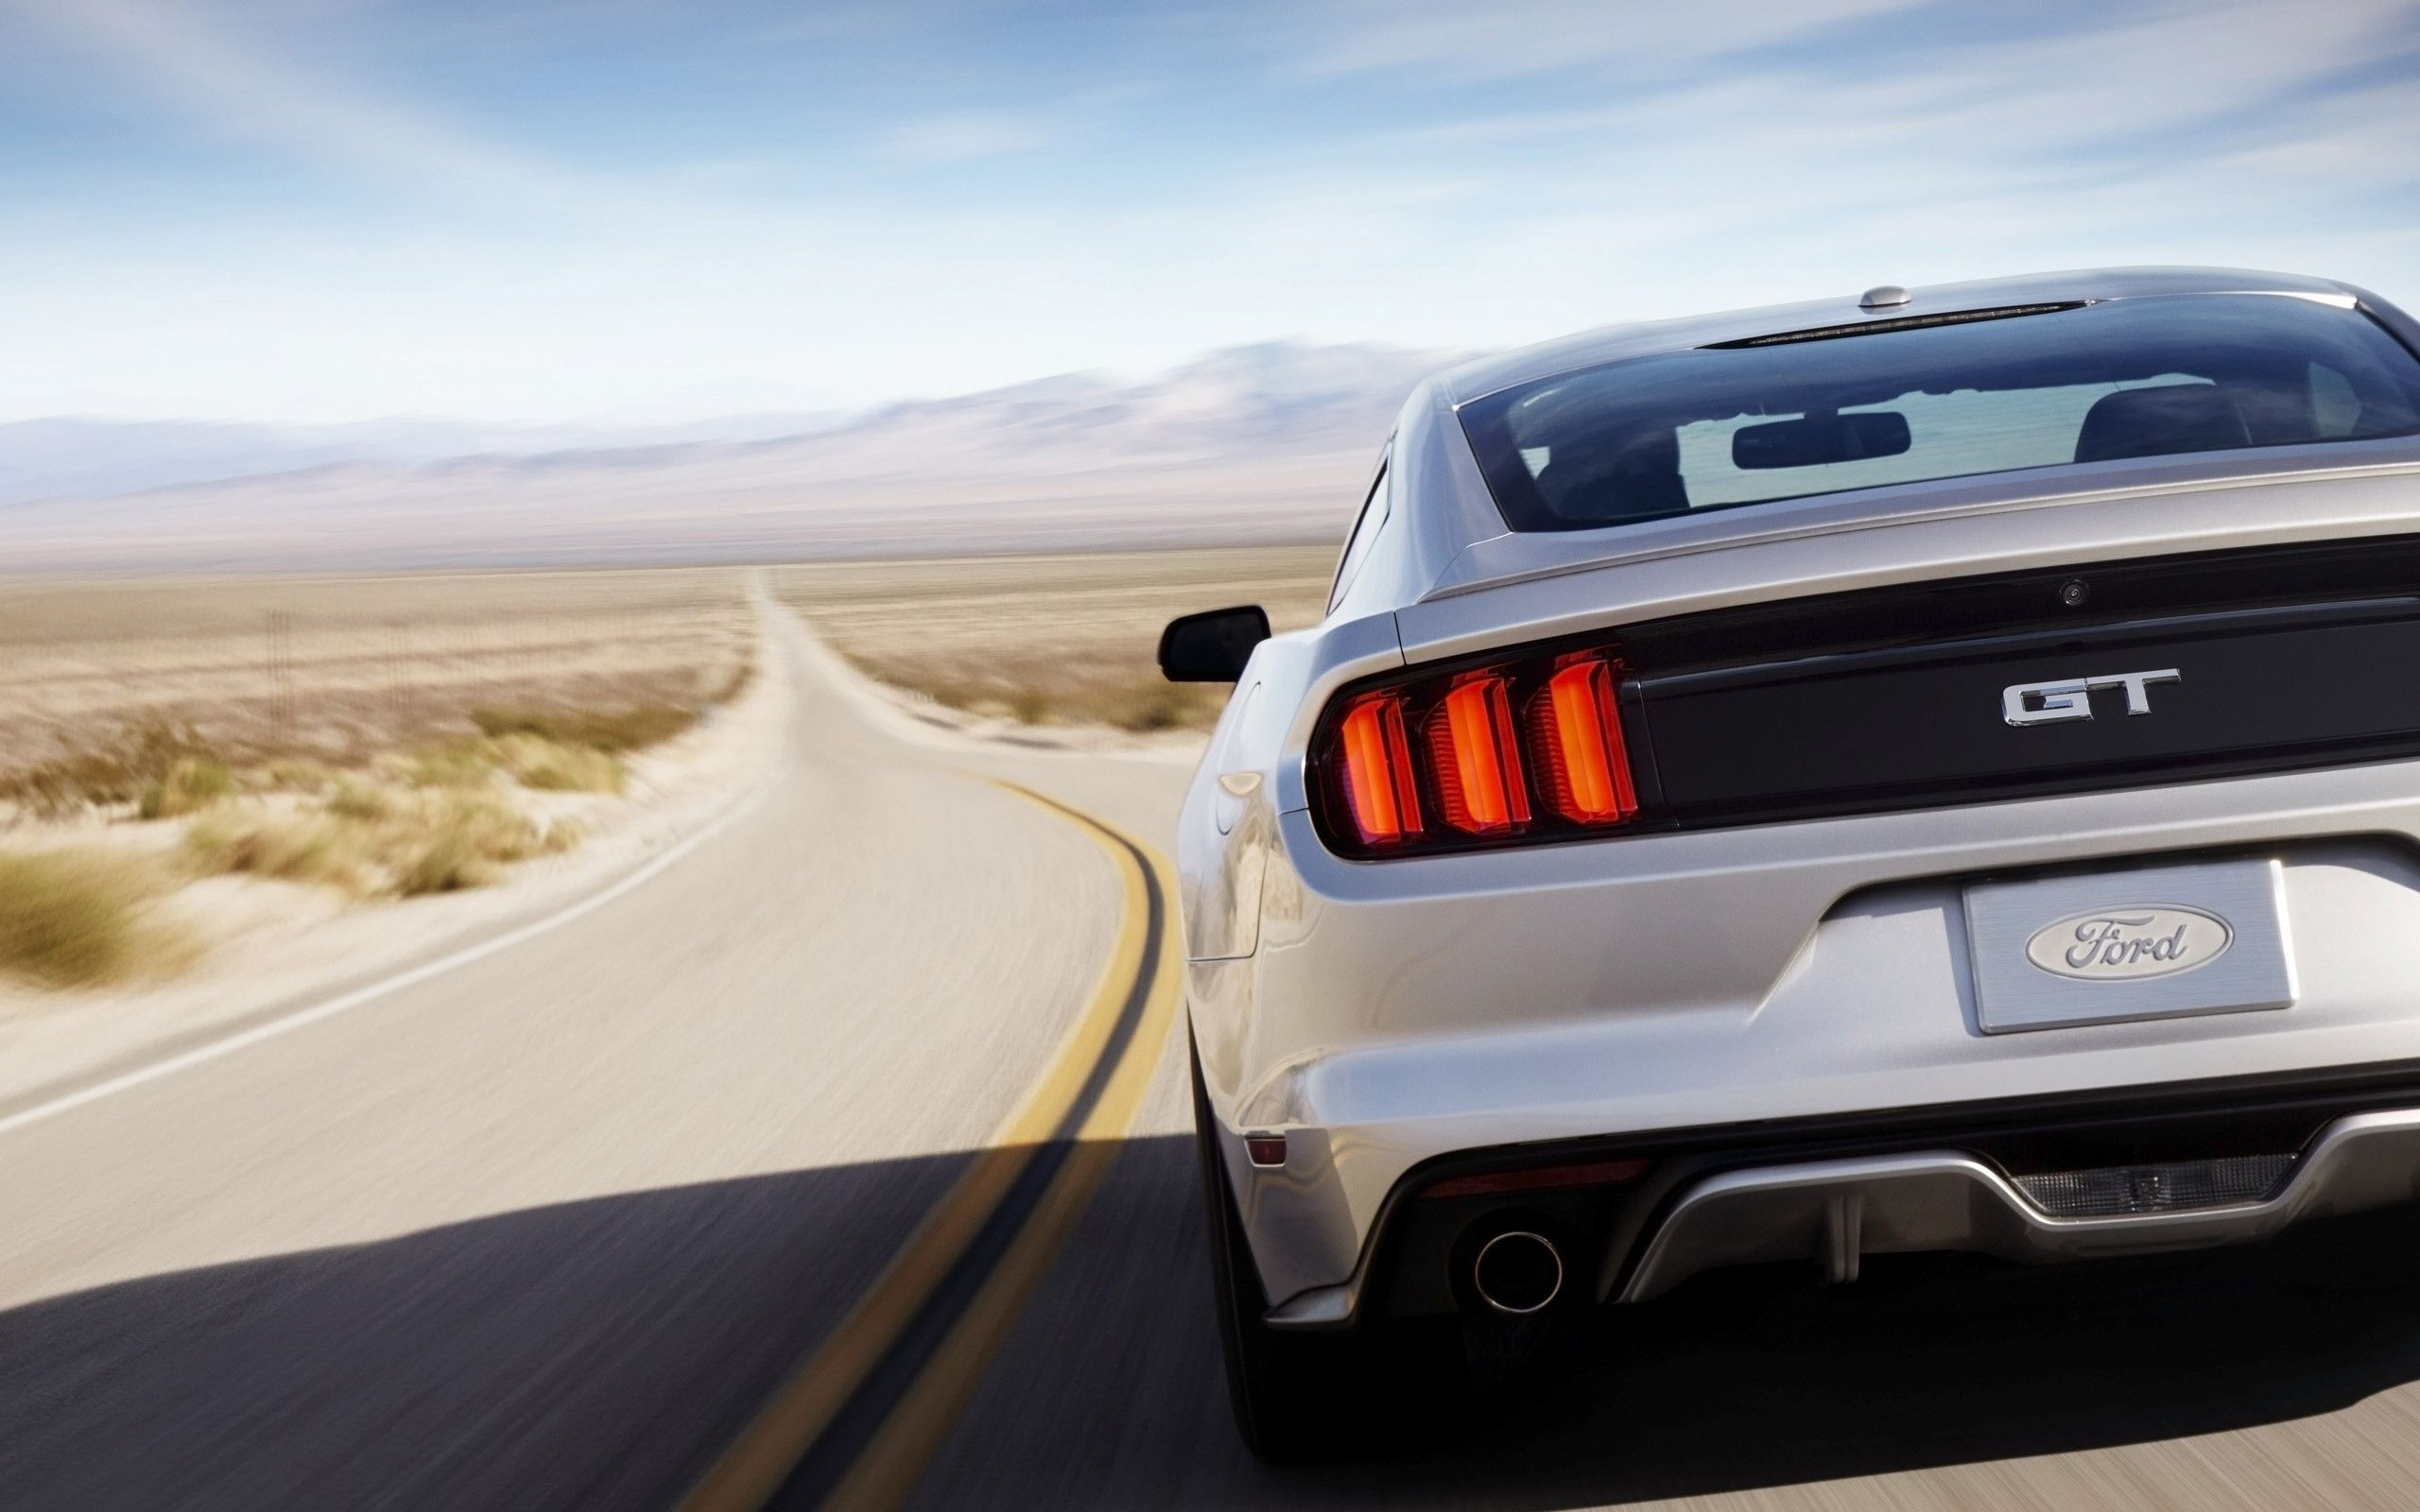 2015 Mustang HD Wallpaper